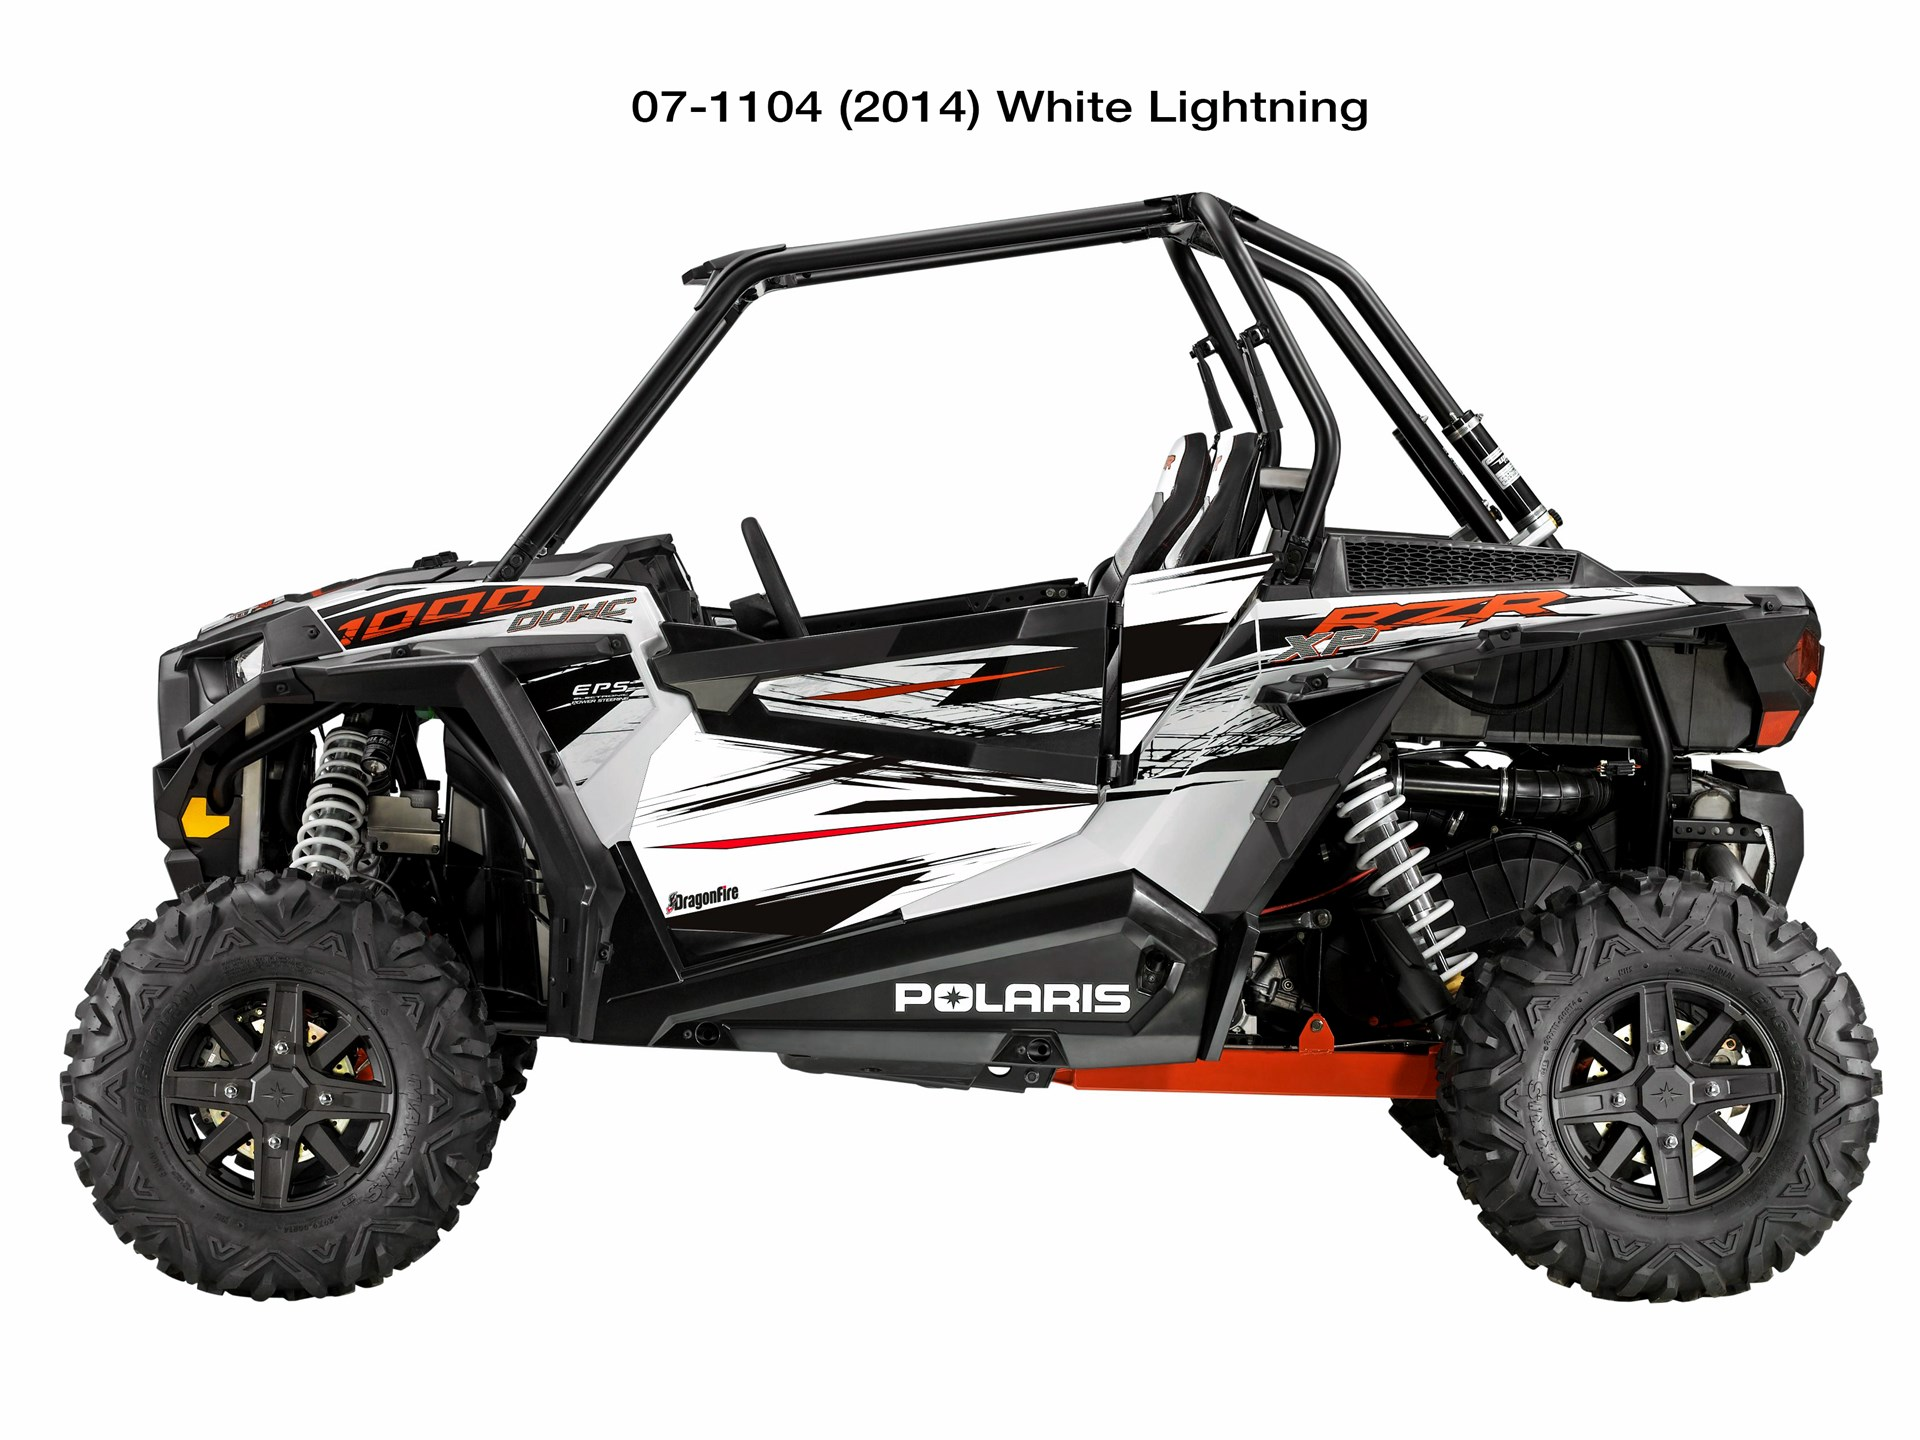 Rzr Wiring Diagram Opinions About Dragonfire Racing 2 Seat Door Panel Graphics Xp 1000 U00bb Bad Motorsports Inc Polaris